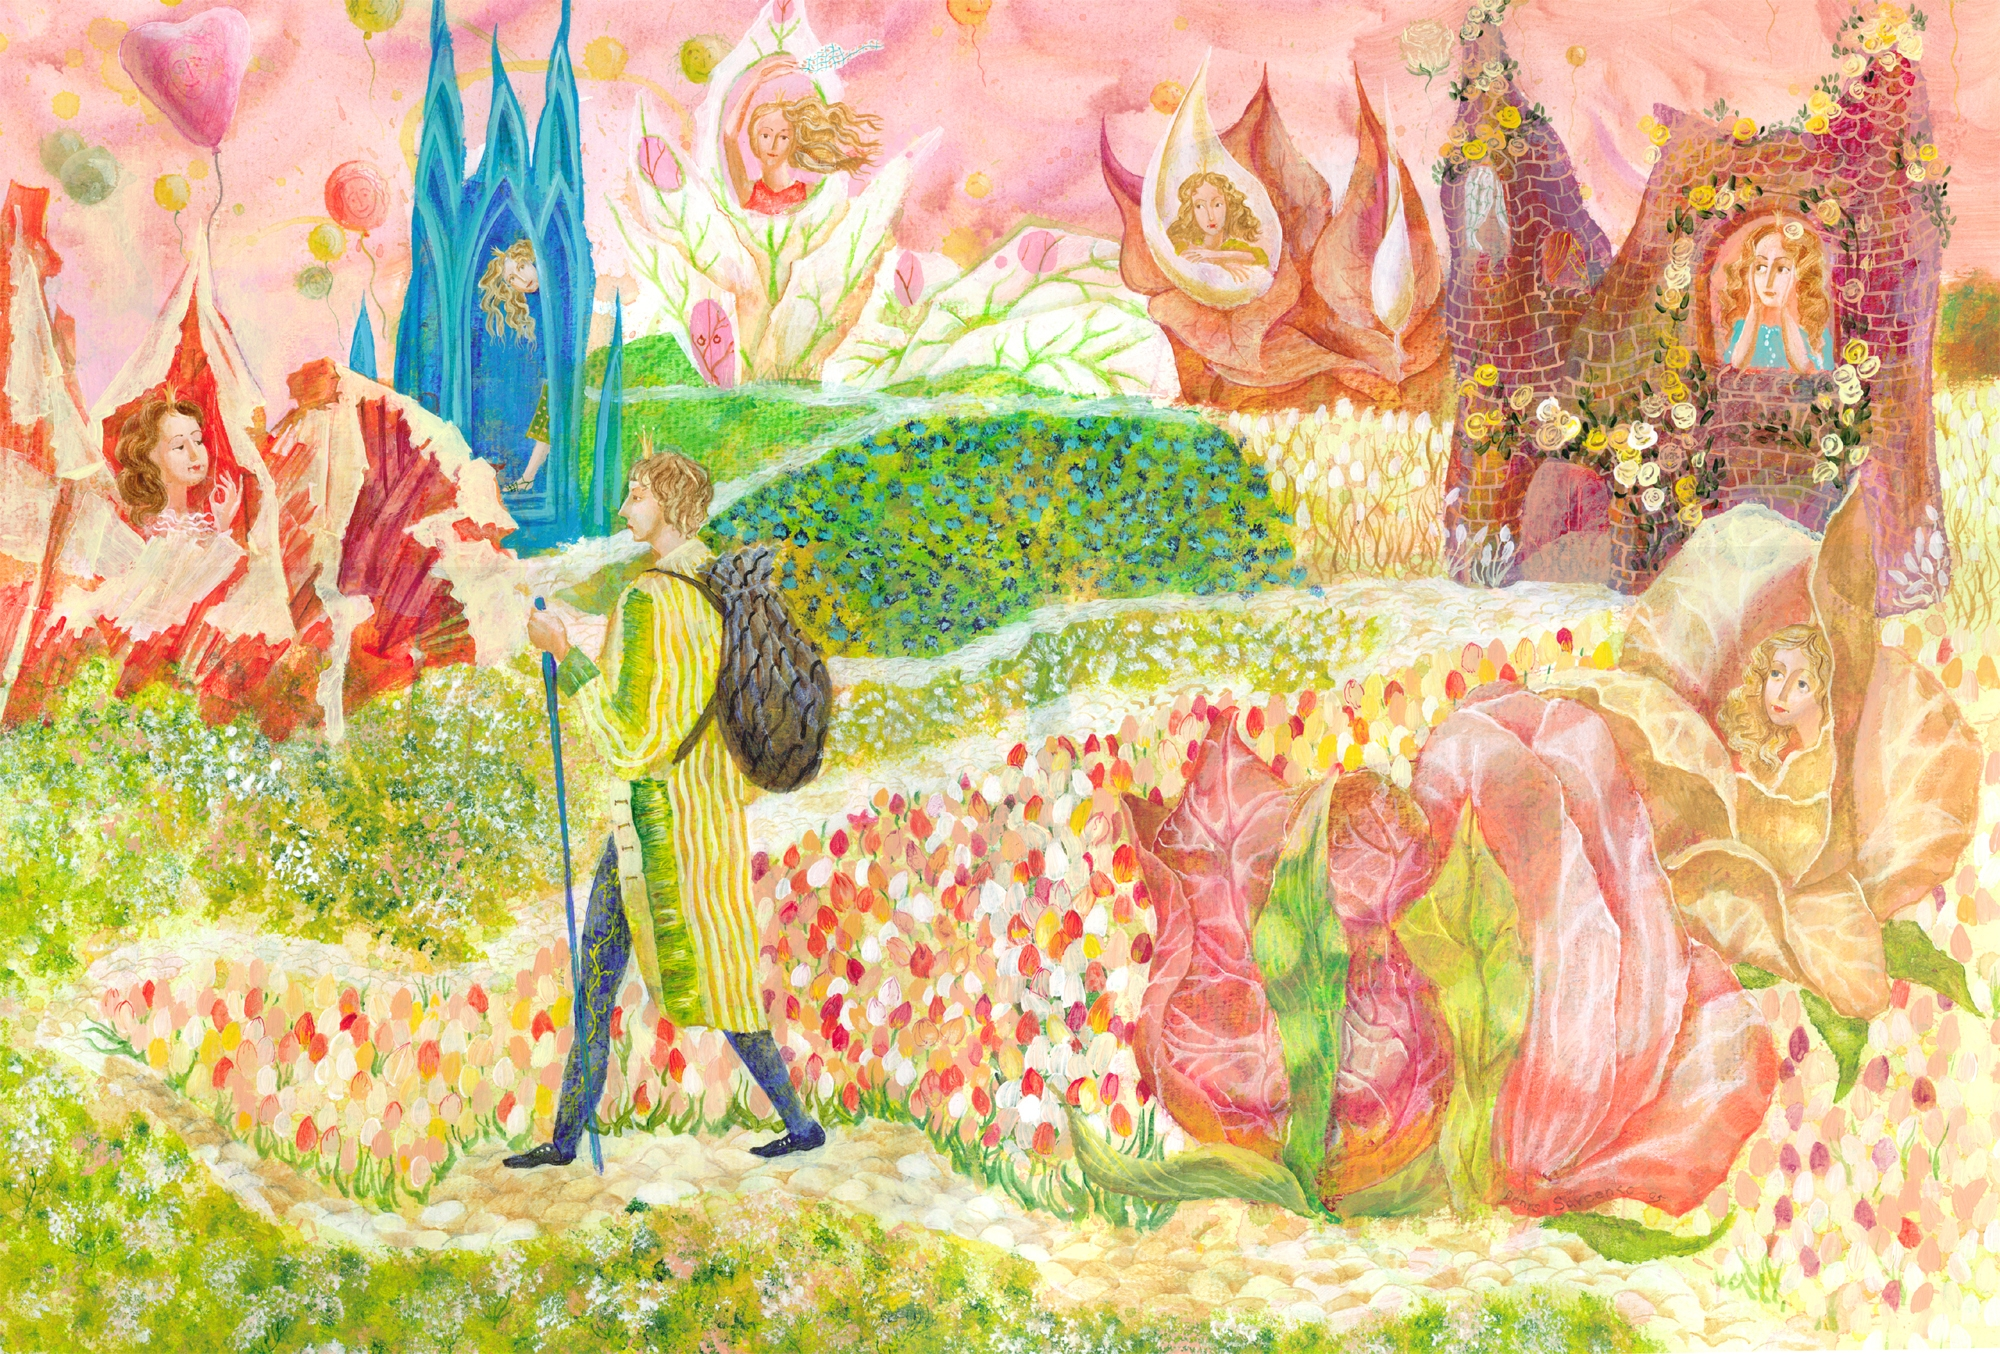 Denys Savchenko. Illustrations. Water colours. The princess and the pea